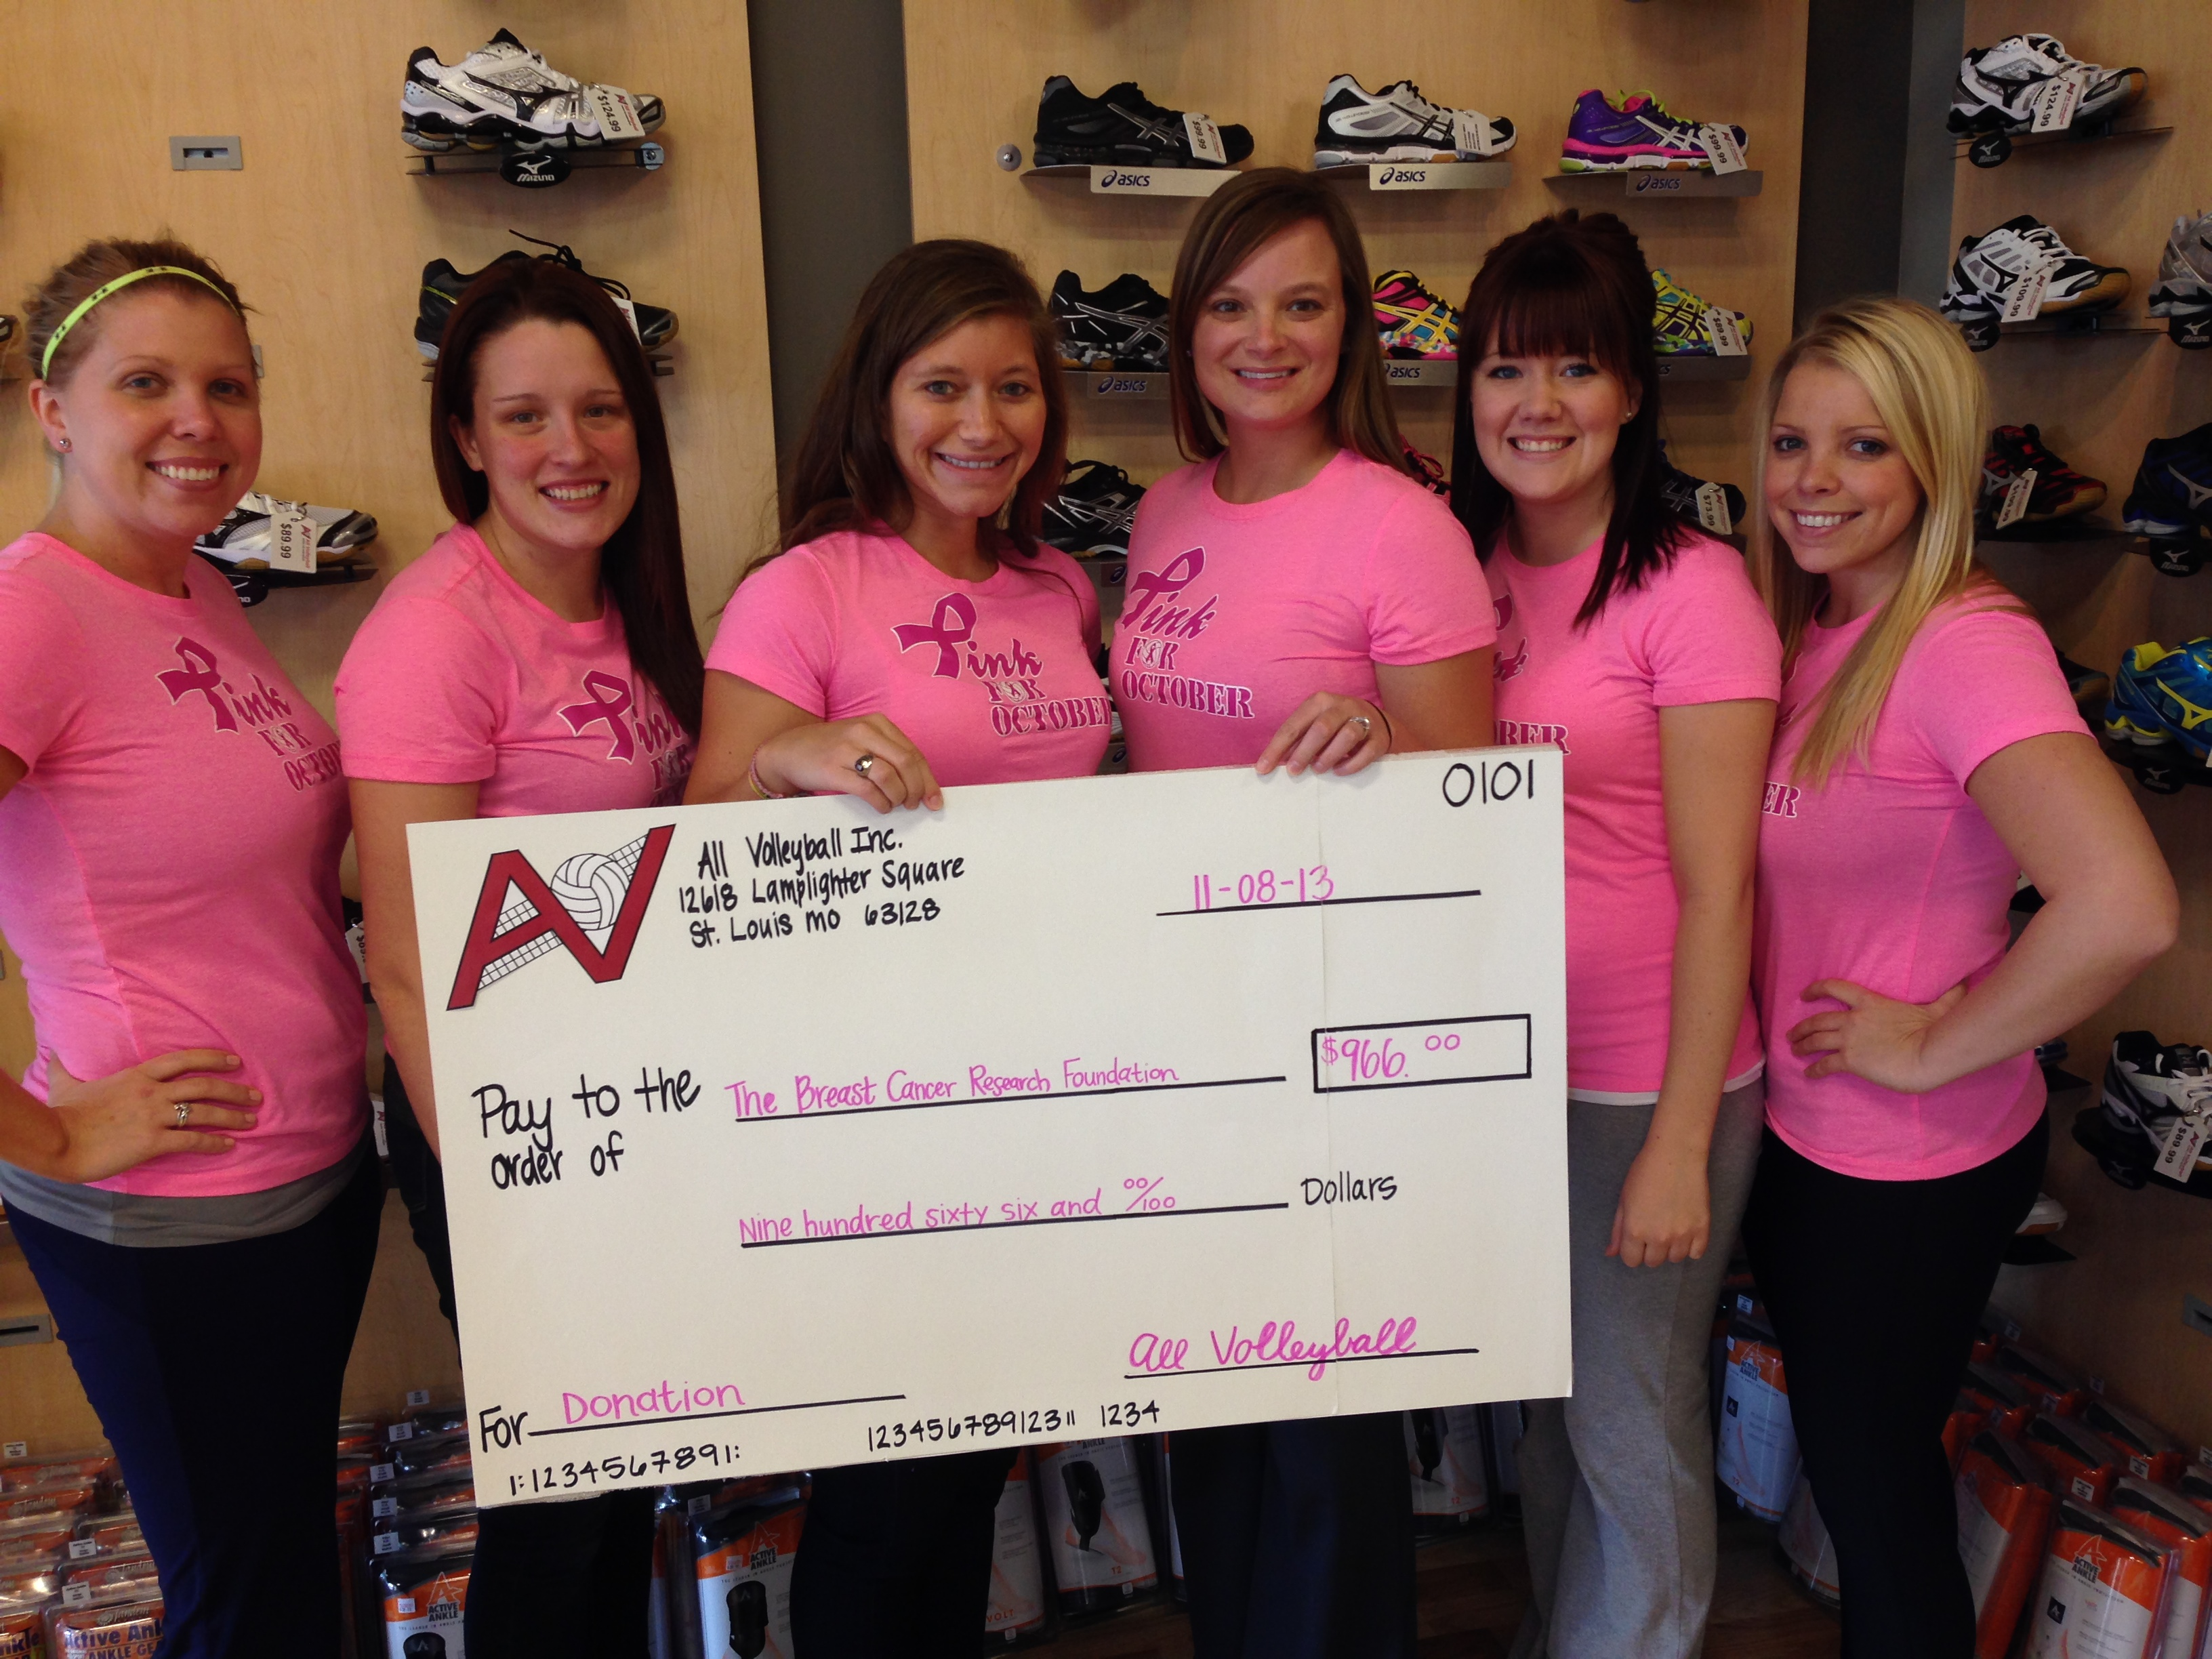 Pink Pride Donation Check